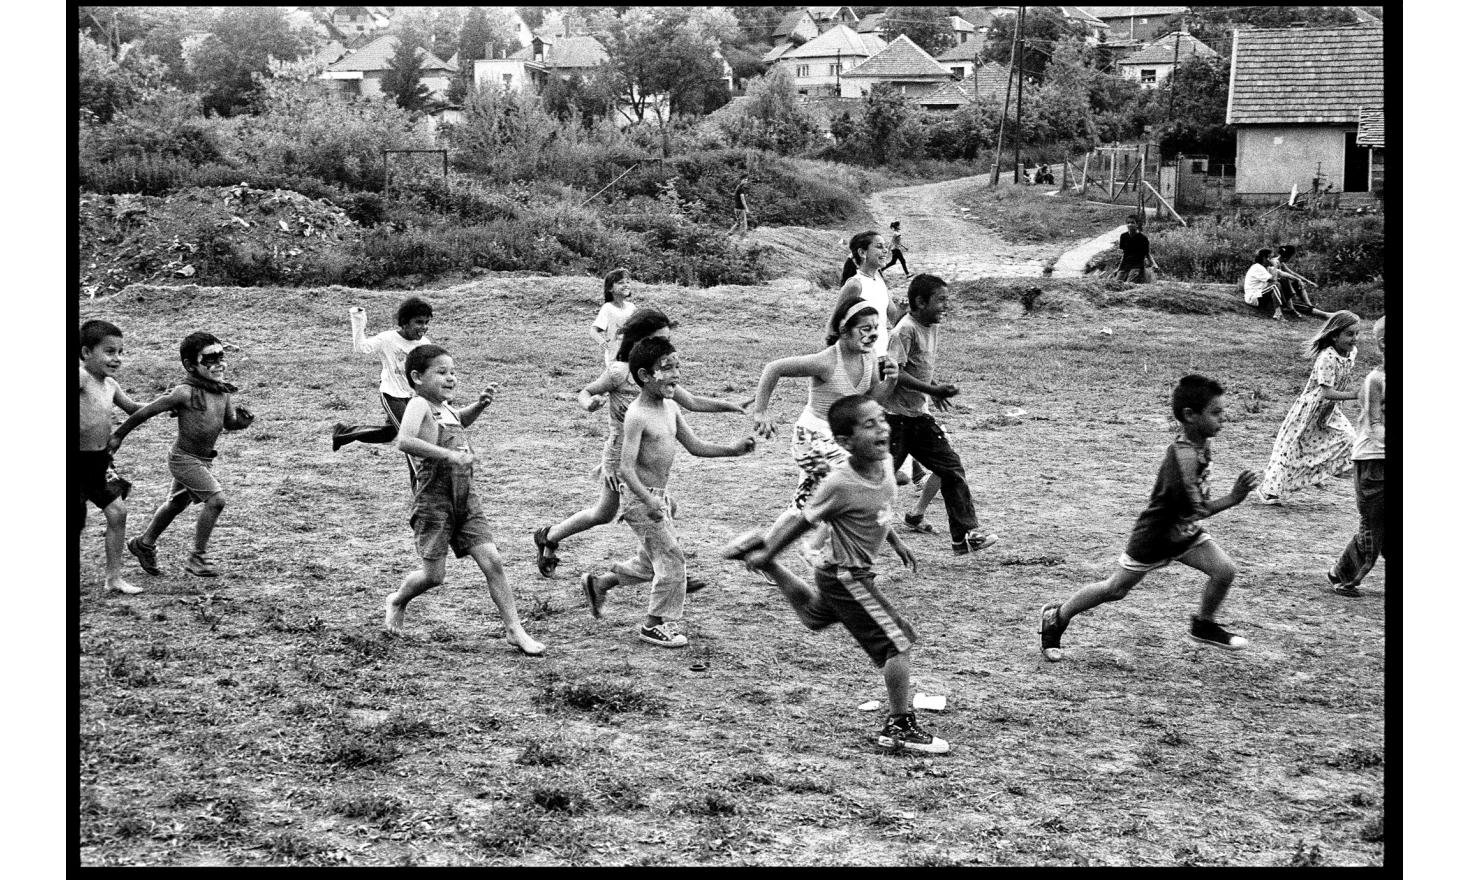 Hungarian NGOs organize games for the children of a Roma village traumatized by fascist militias.Gyöngyöspata, Hungary. May 2011.